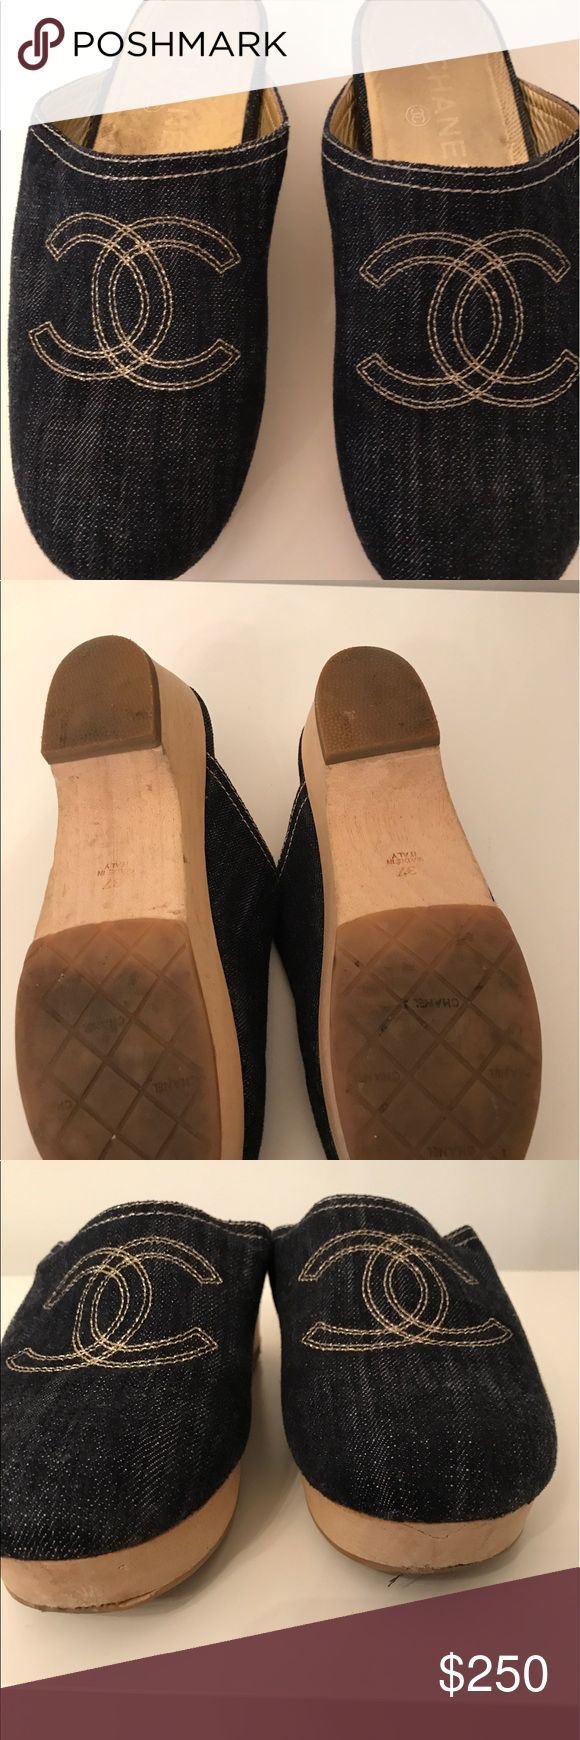 Chanel denim clogs Preowned CHANEL Shoes Mules & Clogs